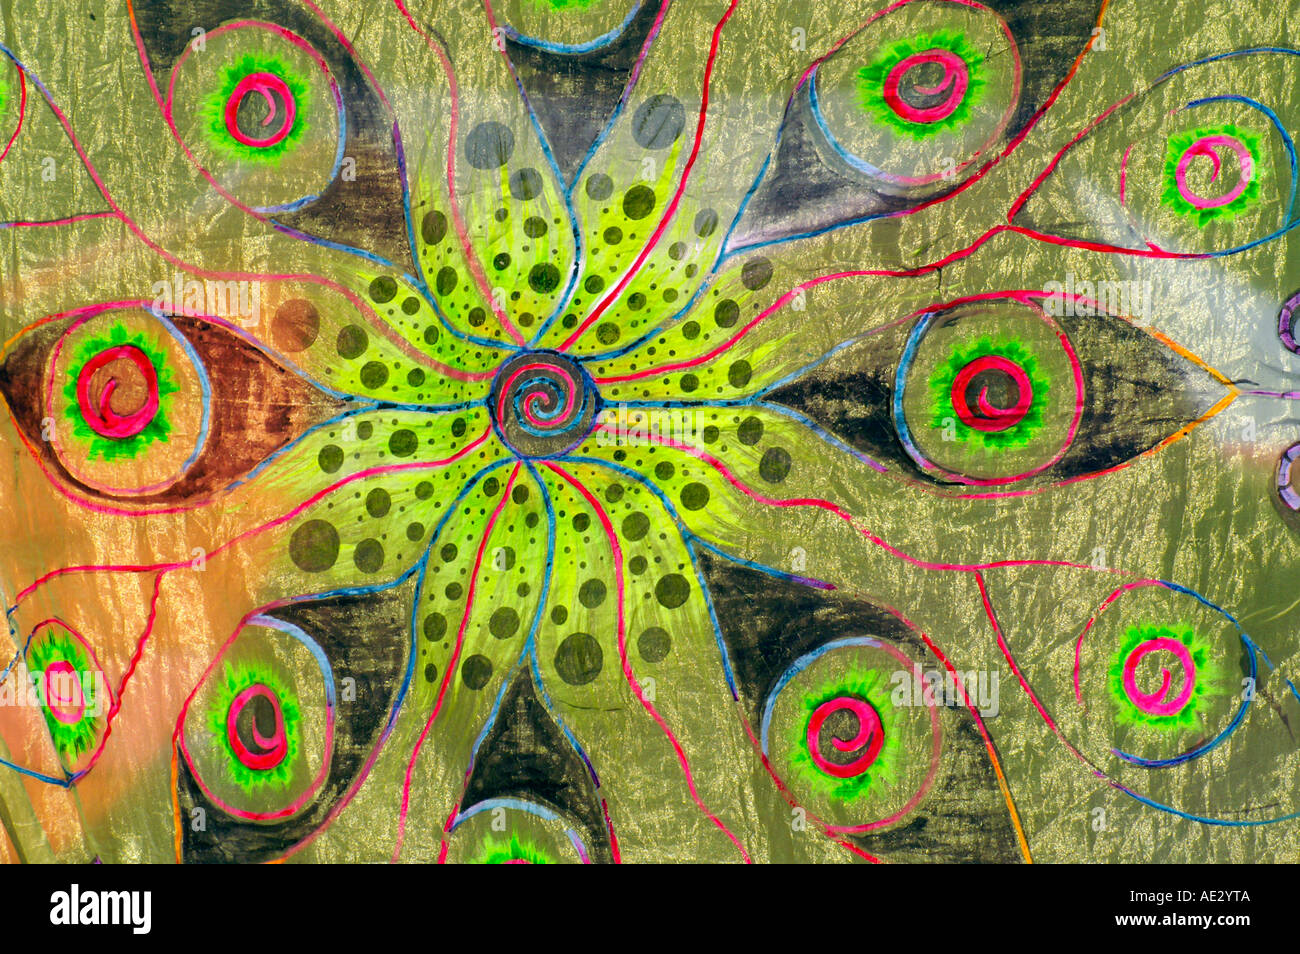 Hilltop 2006 - Colourful mandala psychedelic decoration at rave party - Stock Image